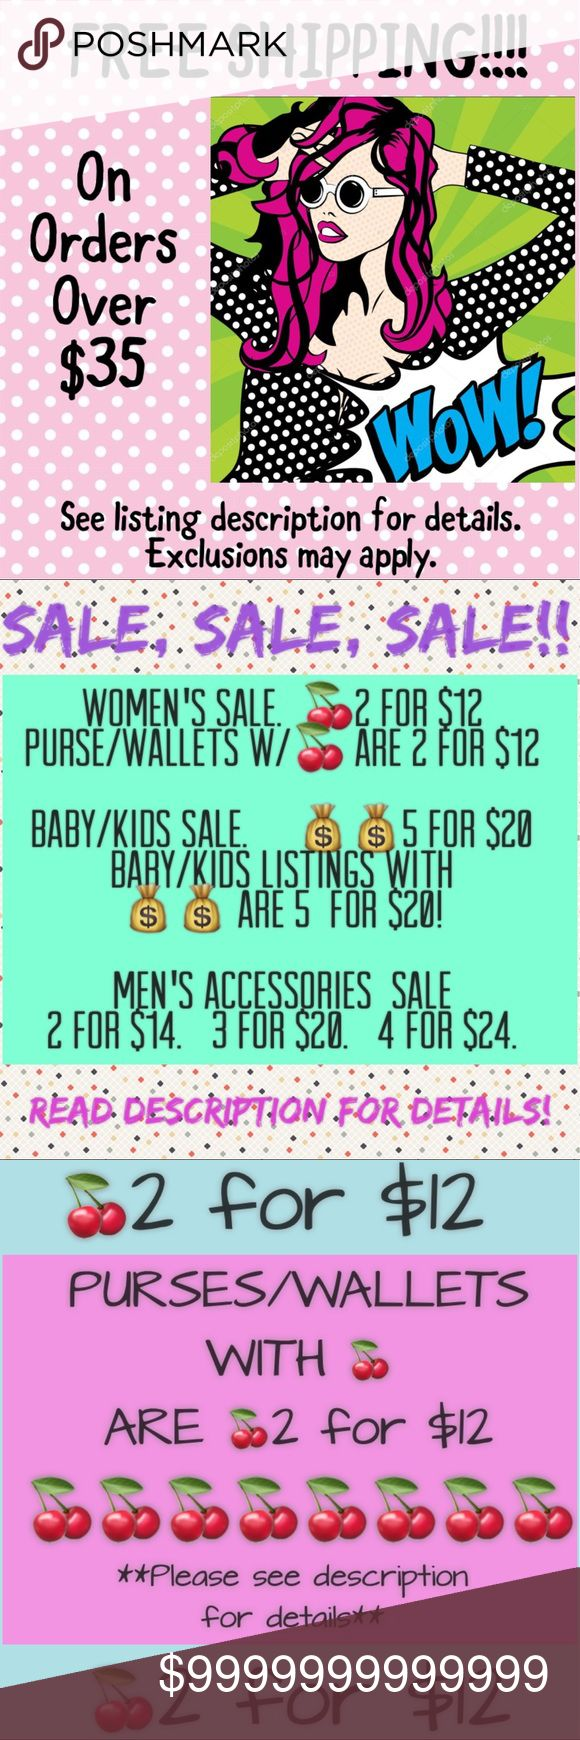 FREE SHIPPING ON ORDERS OVER $35!!! Free shipping on orders over $35.  Make a bundle & offer $7 less!  That's free shipping + $.51 off! 😊. Exclusions apply:  Cannot be combined w/ women's purse sale 🍒 2 for $12, men's tie sale or baby sale 💰💰 5 for $20.  I can be flexible,  if you have sale items & regular priced items I may be able to offer free shipping. If not I counter. Please keep in mind bigger bundles may require extra shipping charges that could be passed onto the buyer when…